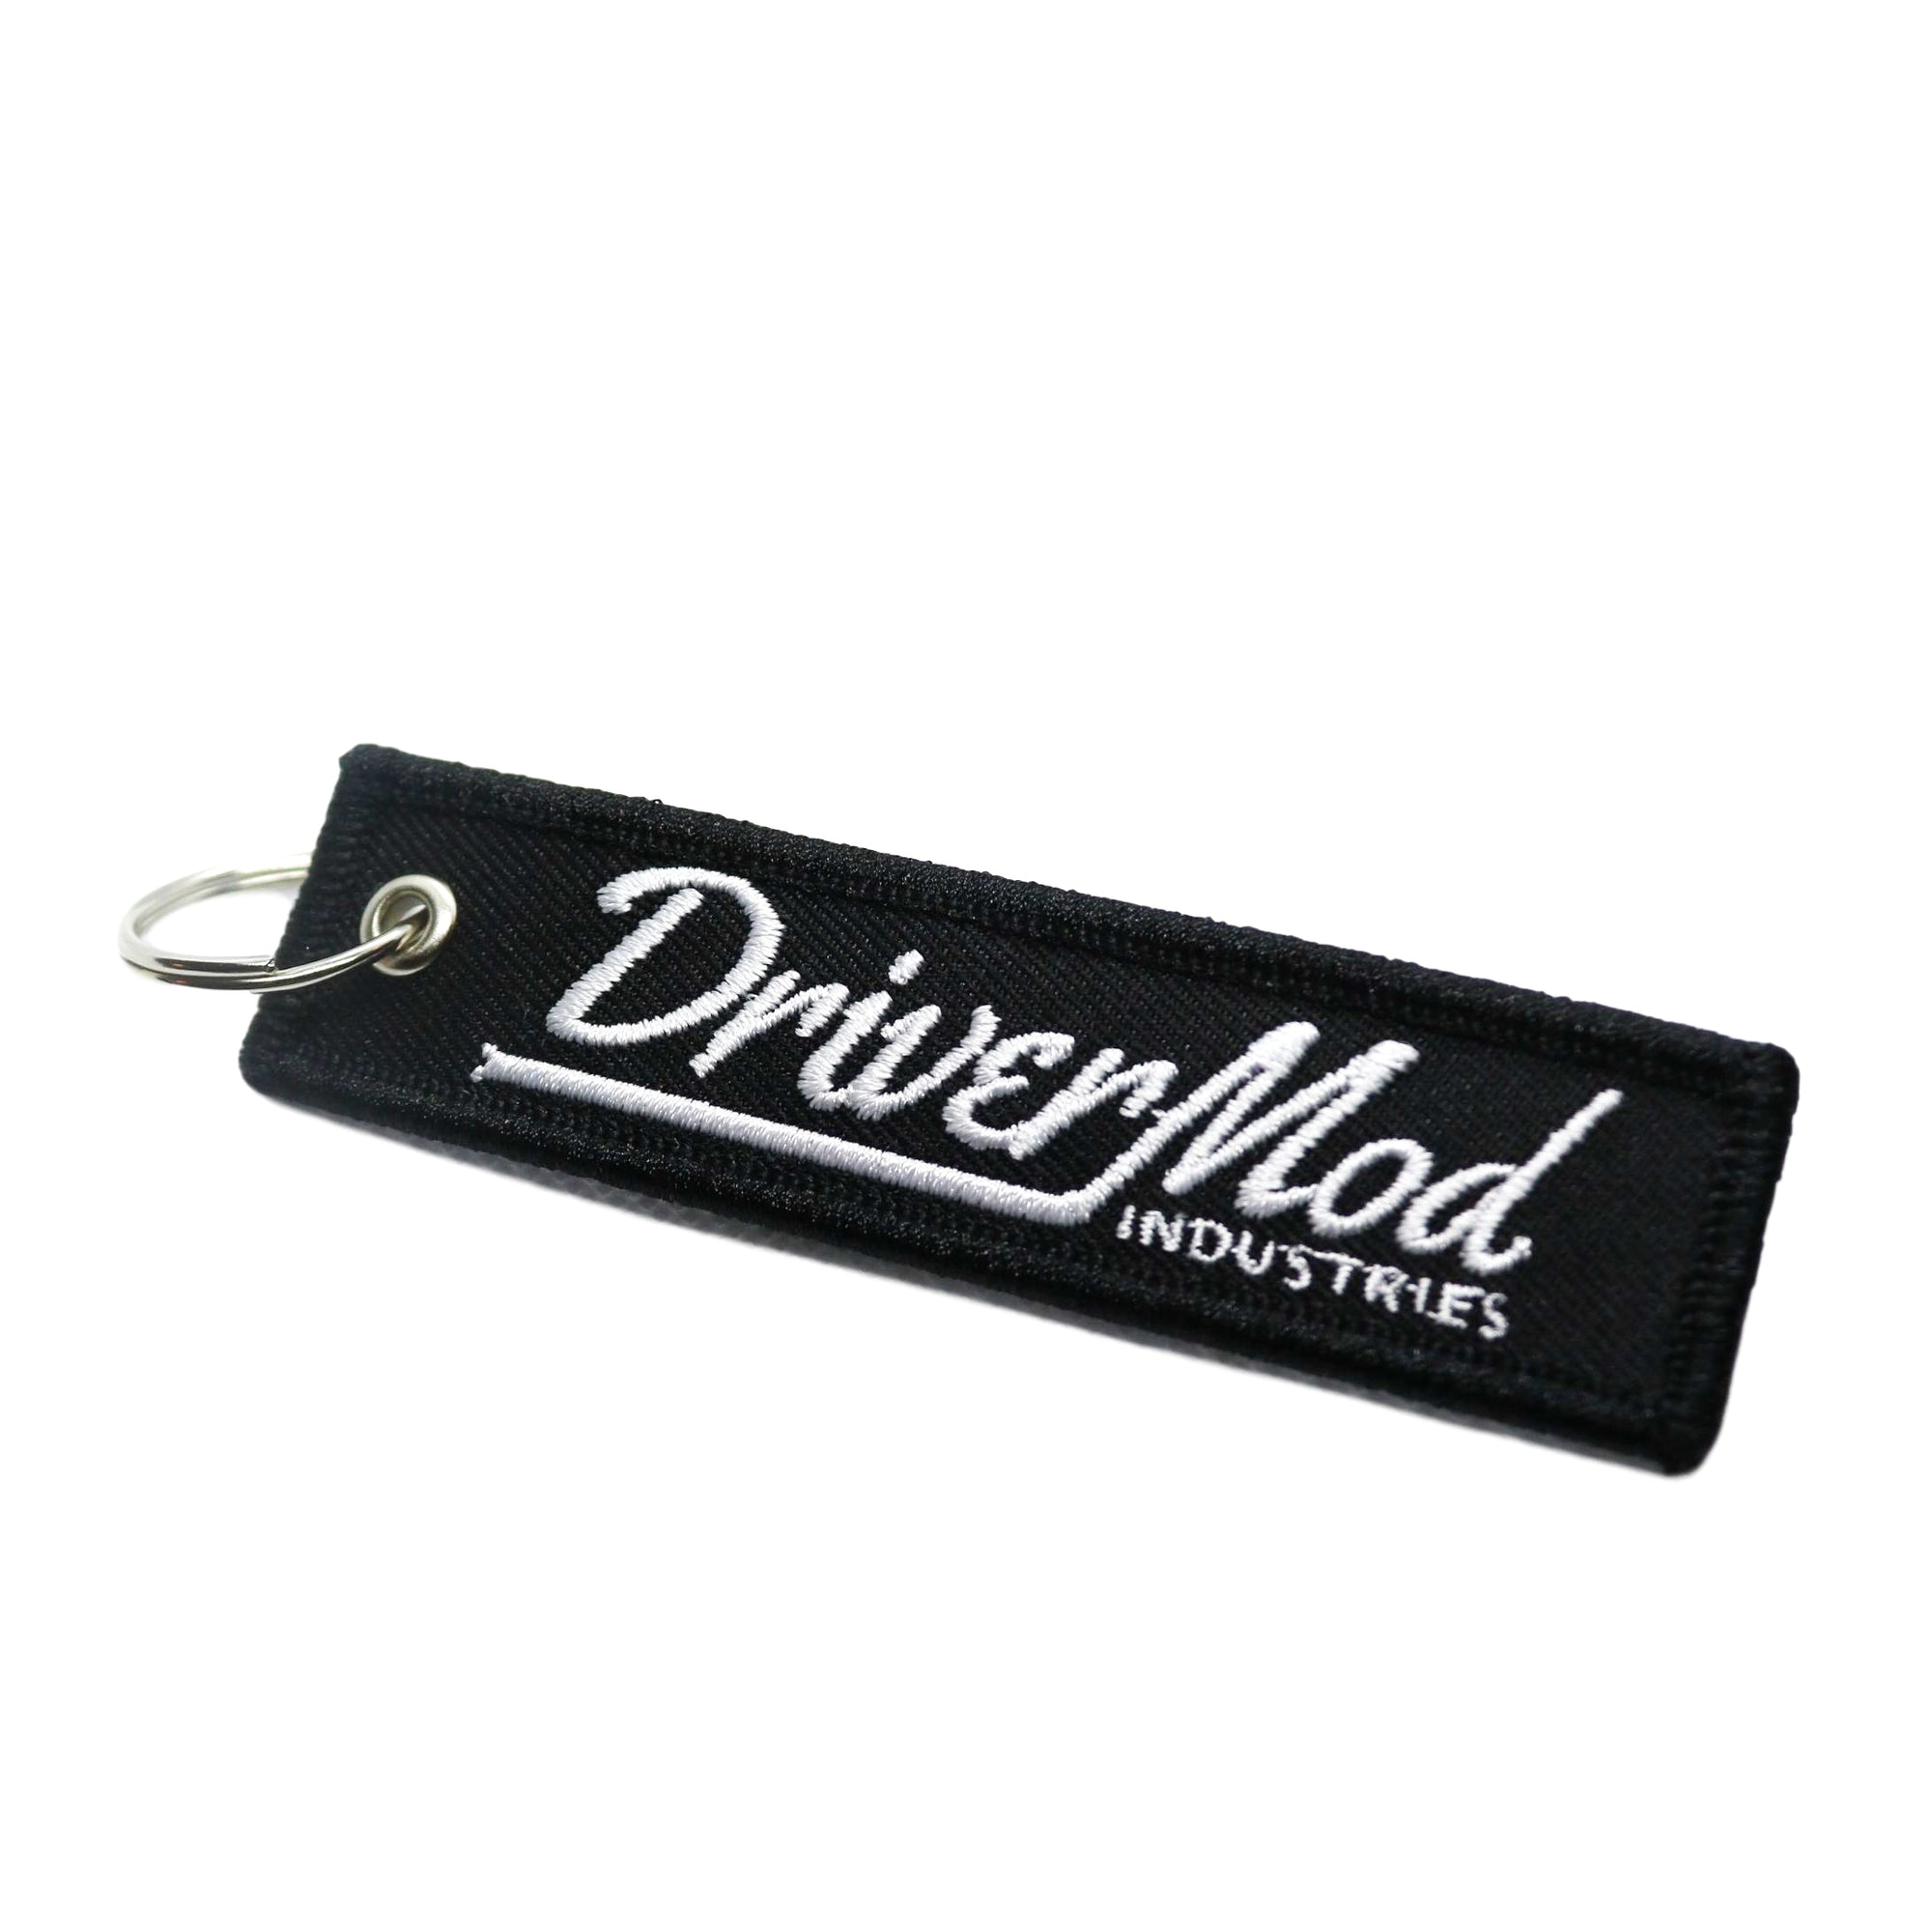 DriverMod Industries Keytag